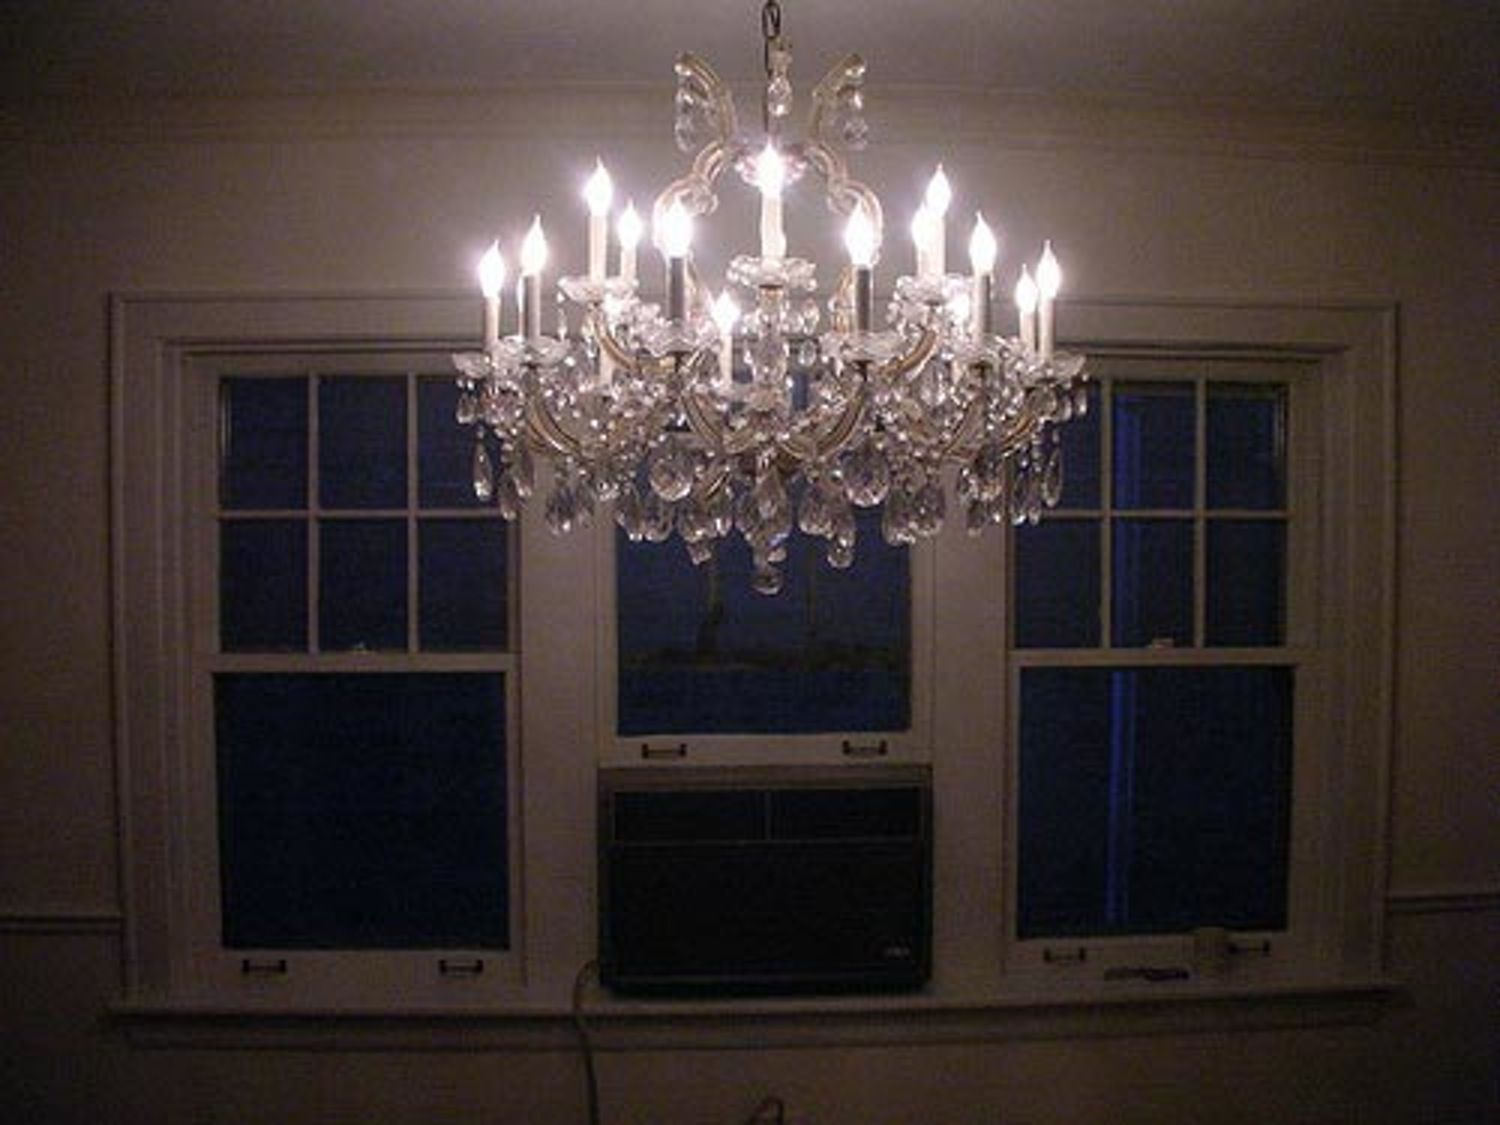 How to clean a crystal chandelier chandeliers crystals and how to clean a crystal chandelier aloadofball Images